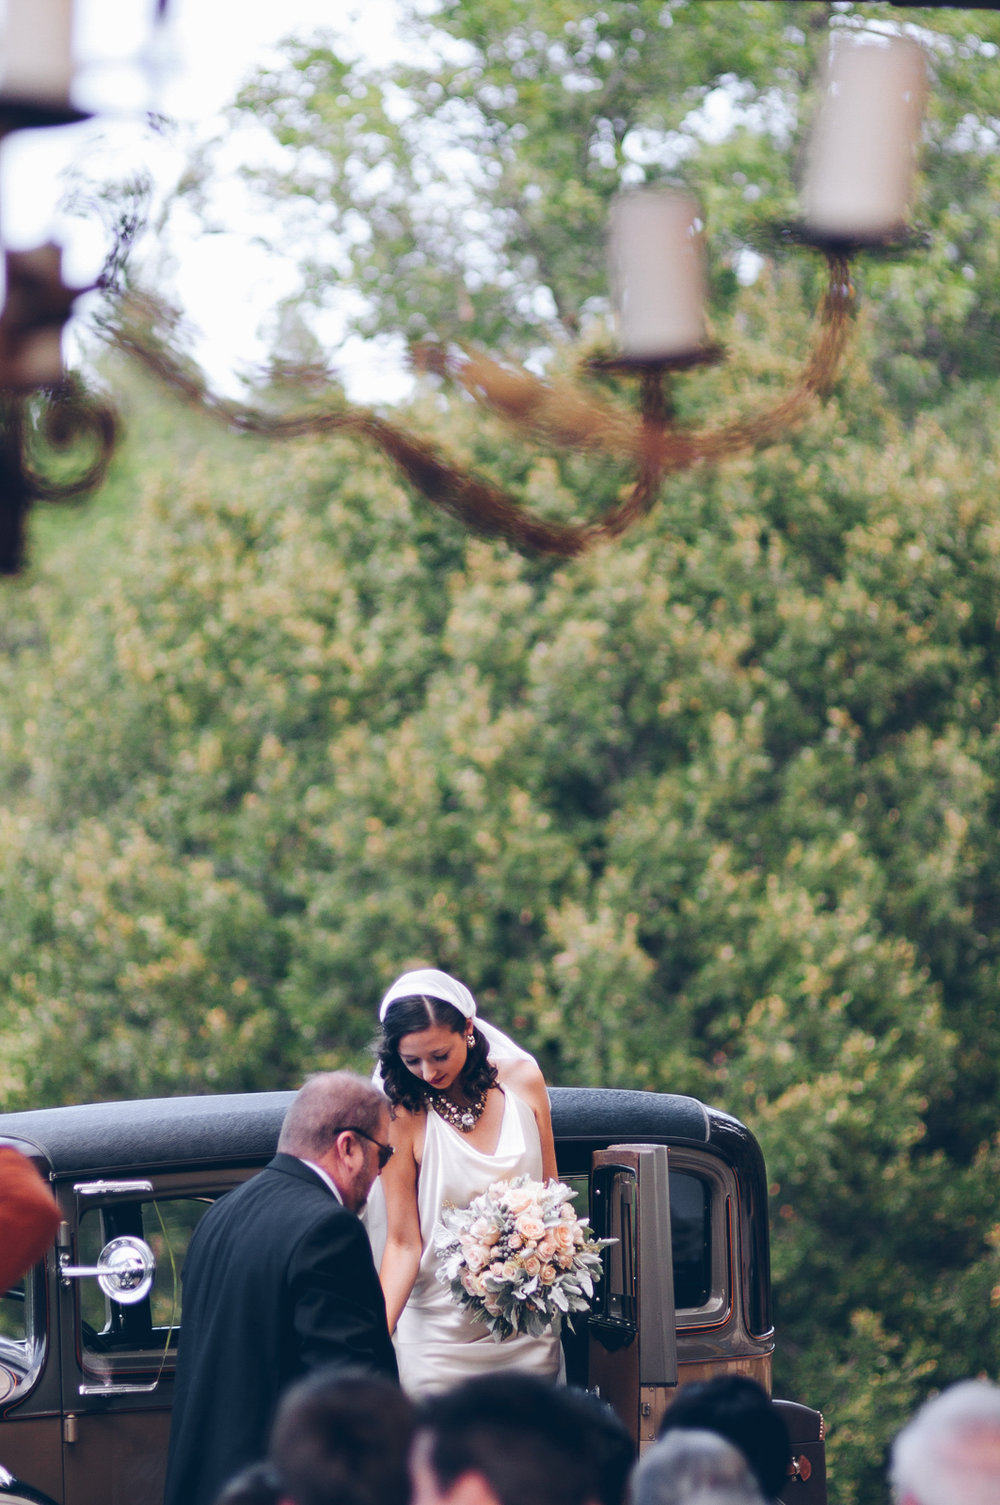 miraflores_winery_wedding_photography_ian_melissa_ebony_siovhan_bokeh_photography_22.jpg